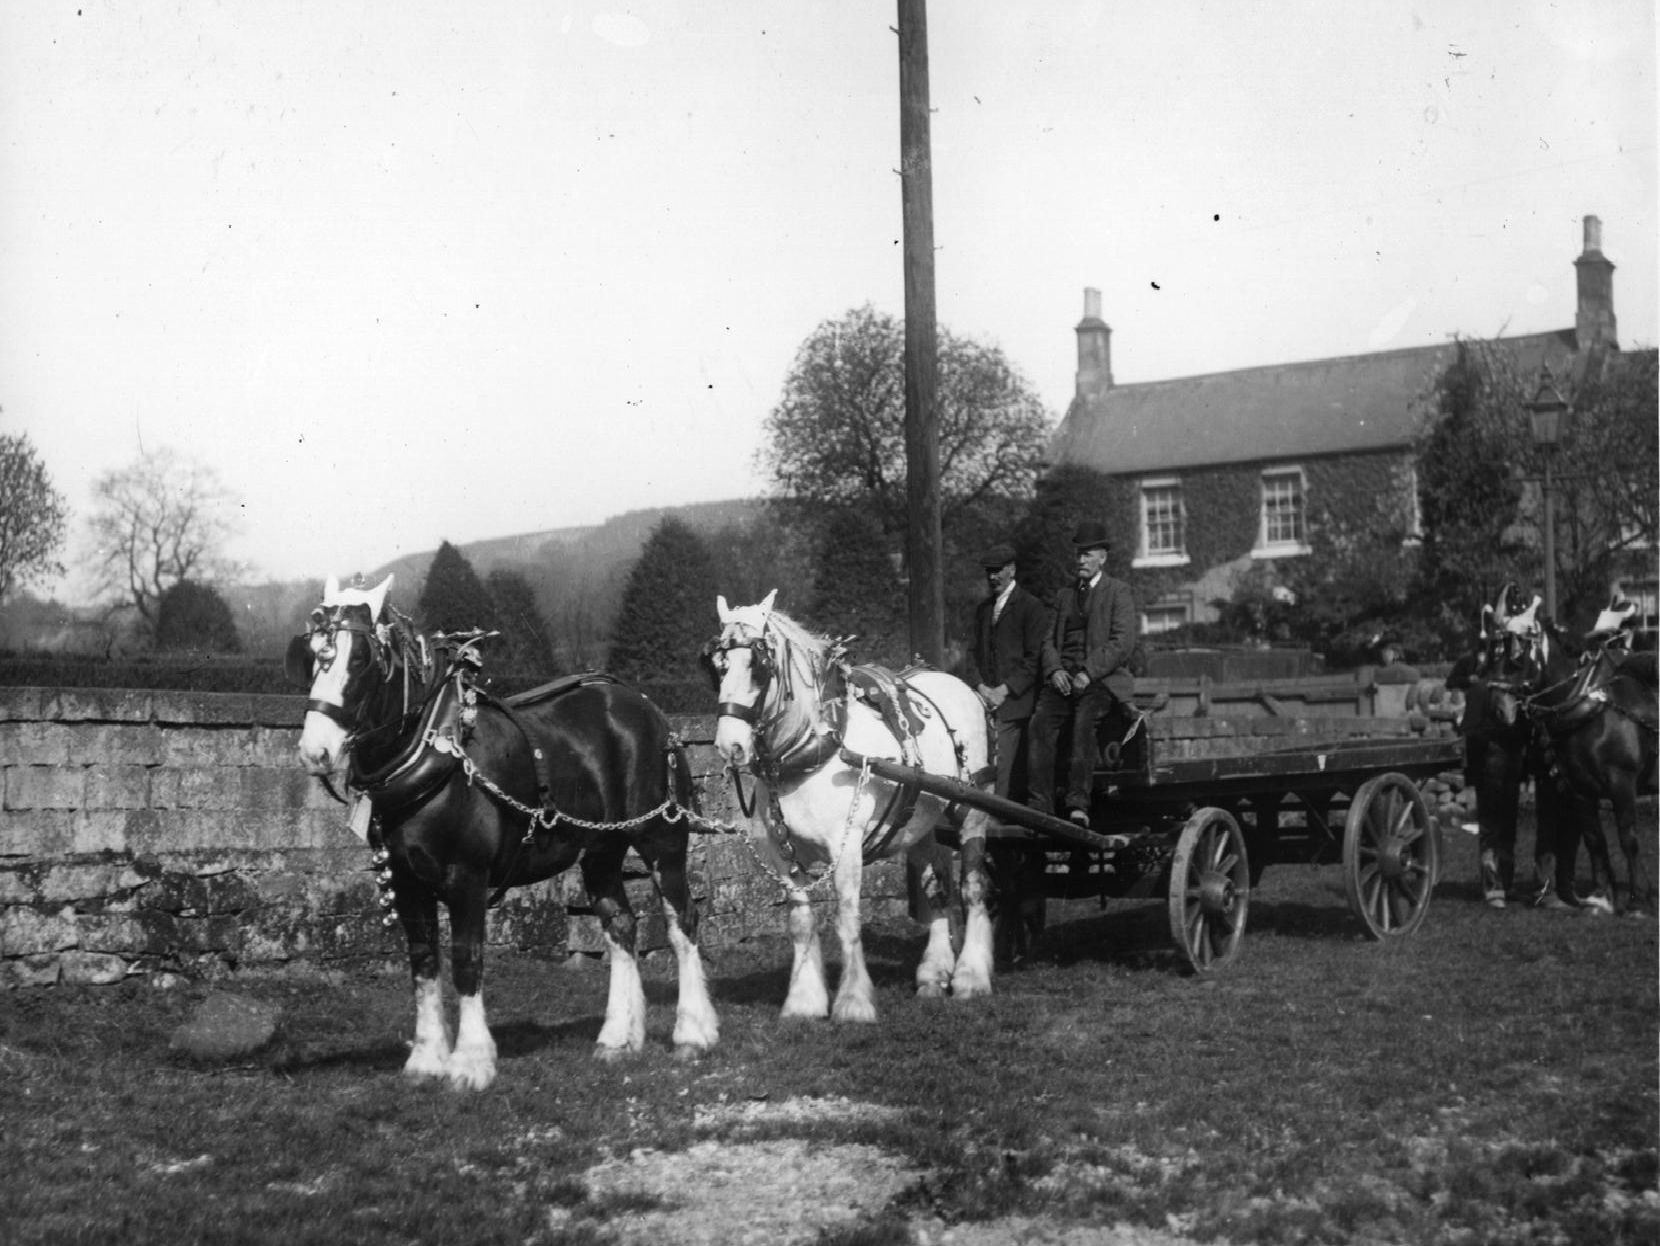 This horse and cart were part of the May Day parade in Matlock Bath in 1907.